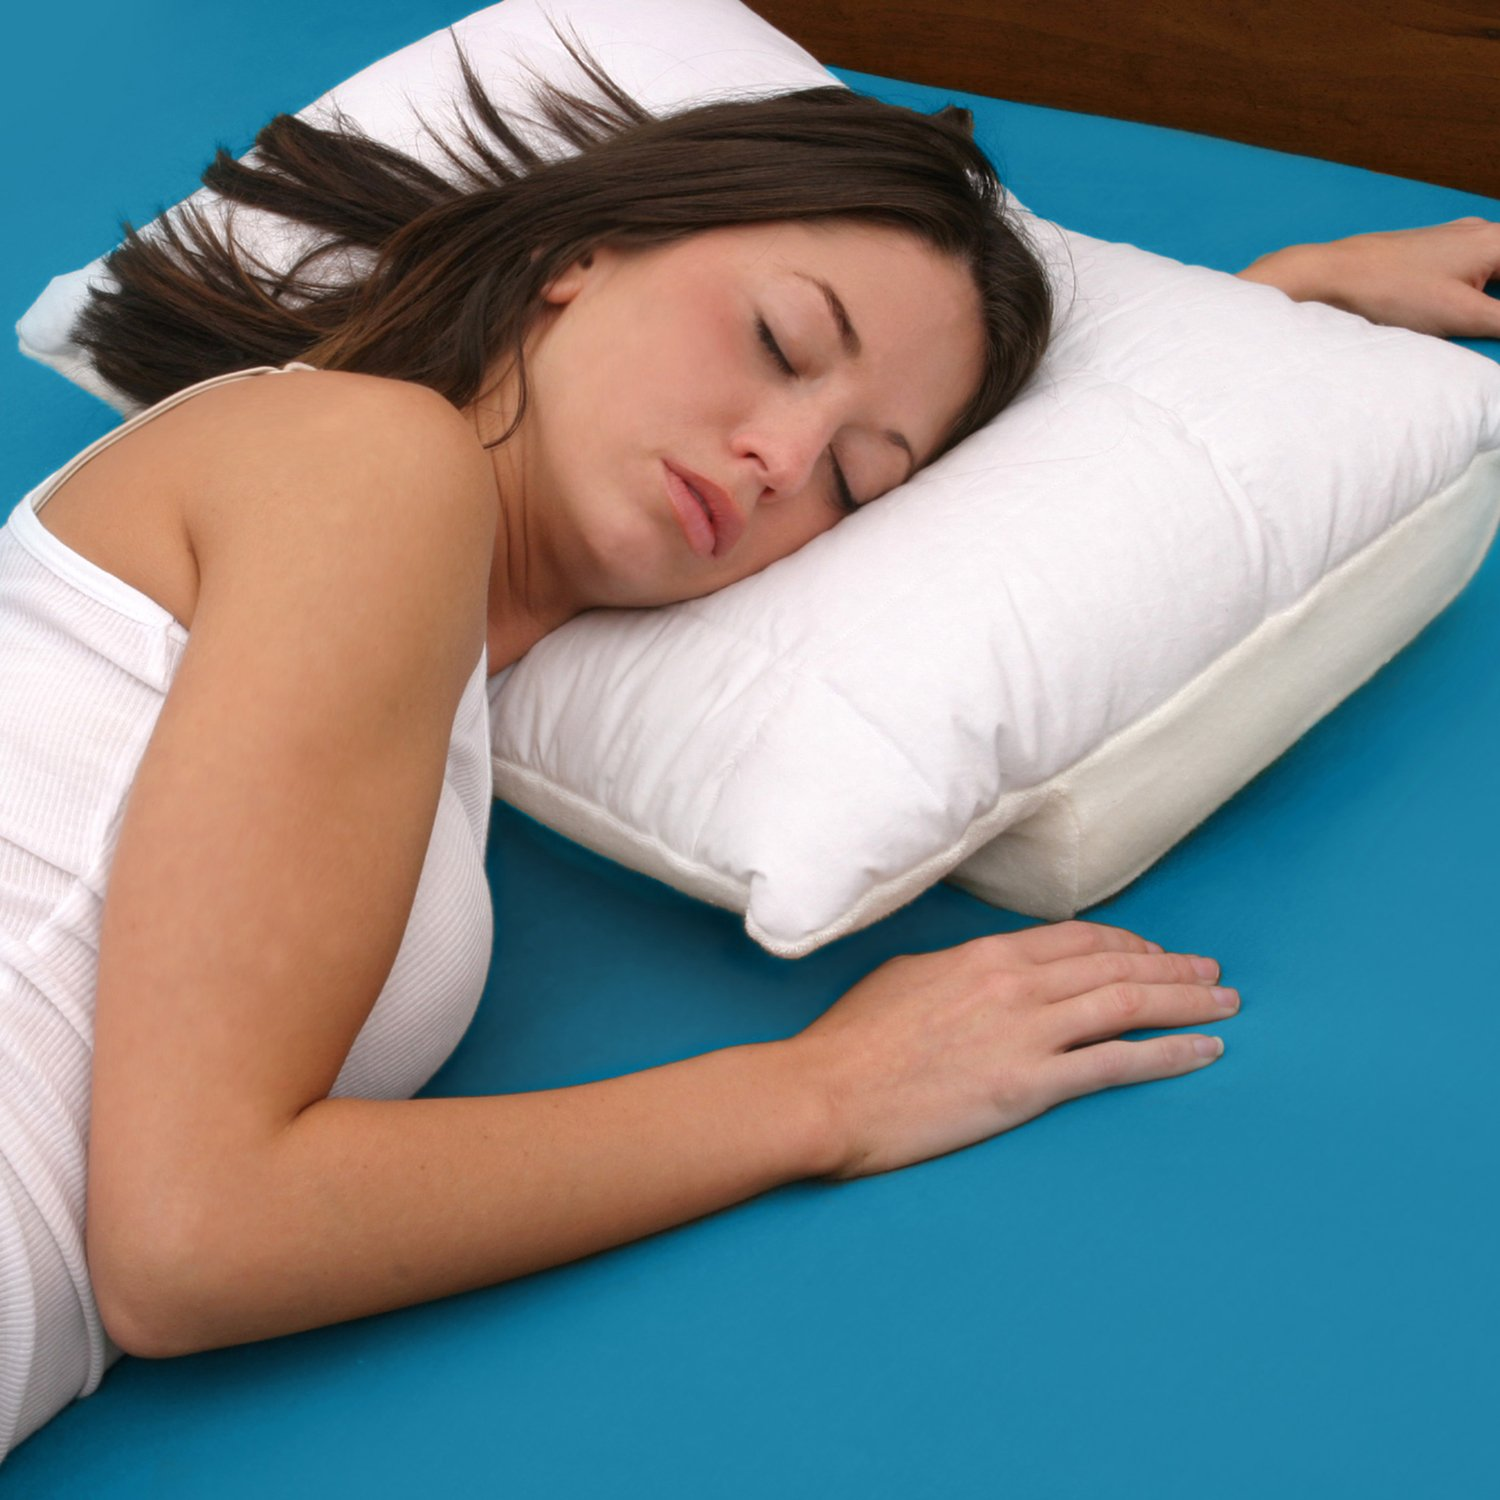 what is shredded side reviews pillow sleepers pain full the for best memory with shoulder bamboo foam